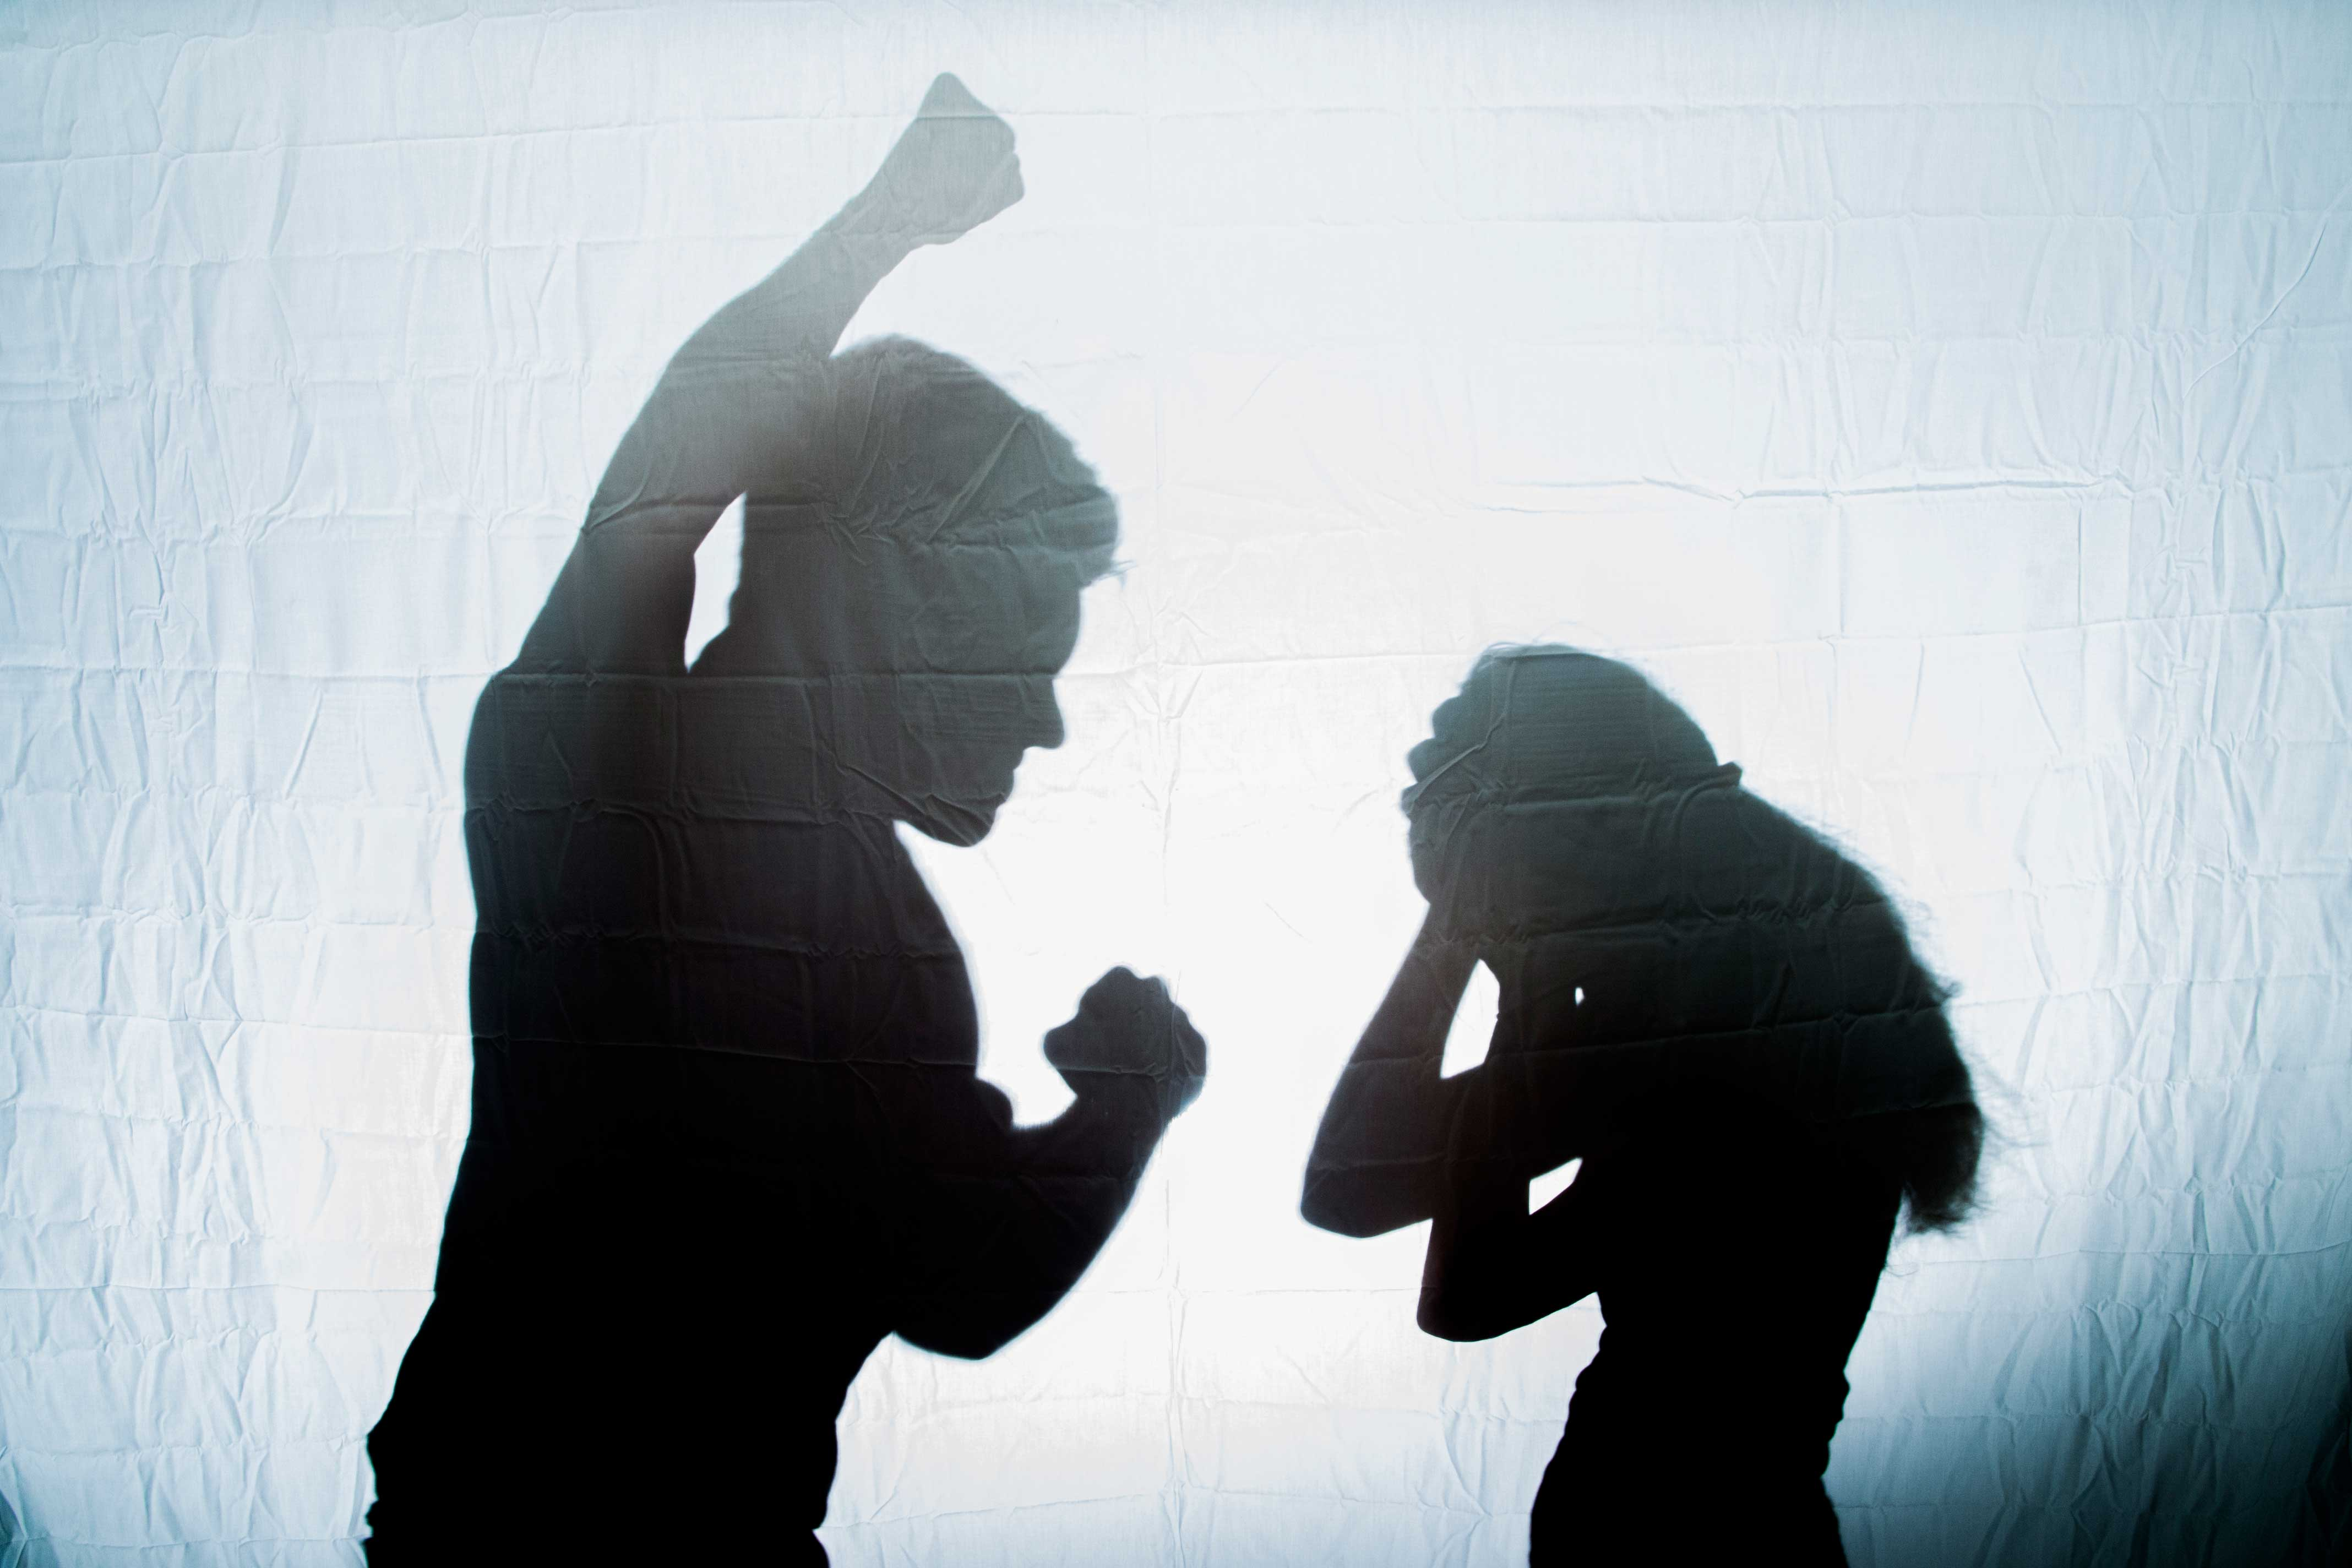 Domestic Violence: Too close to home